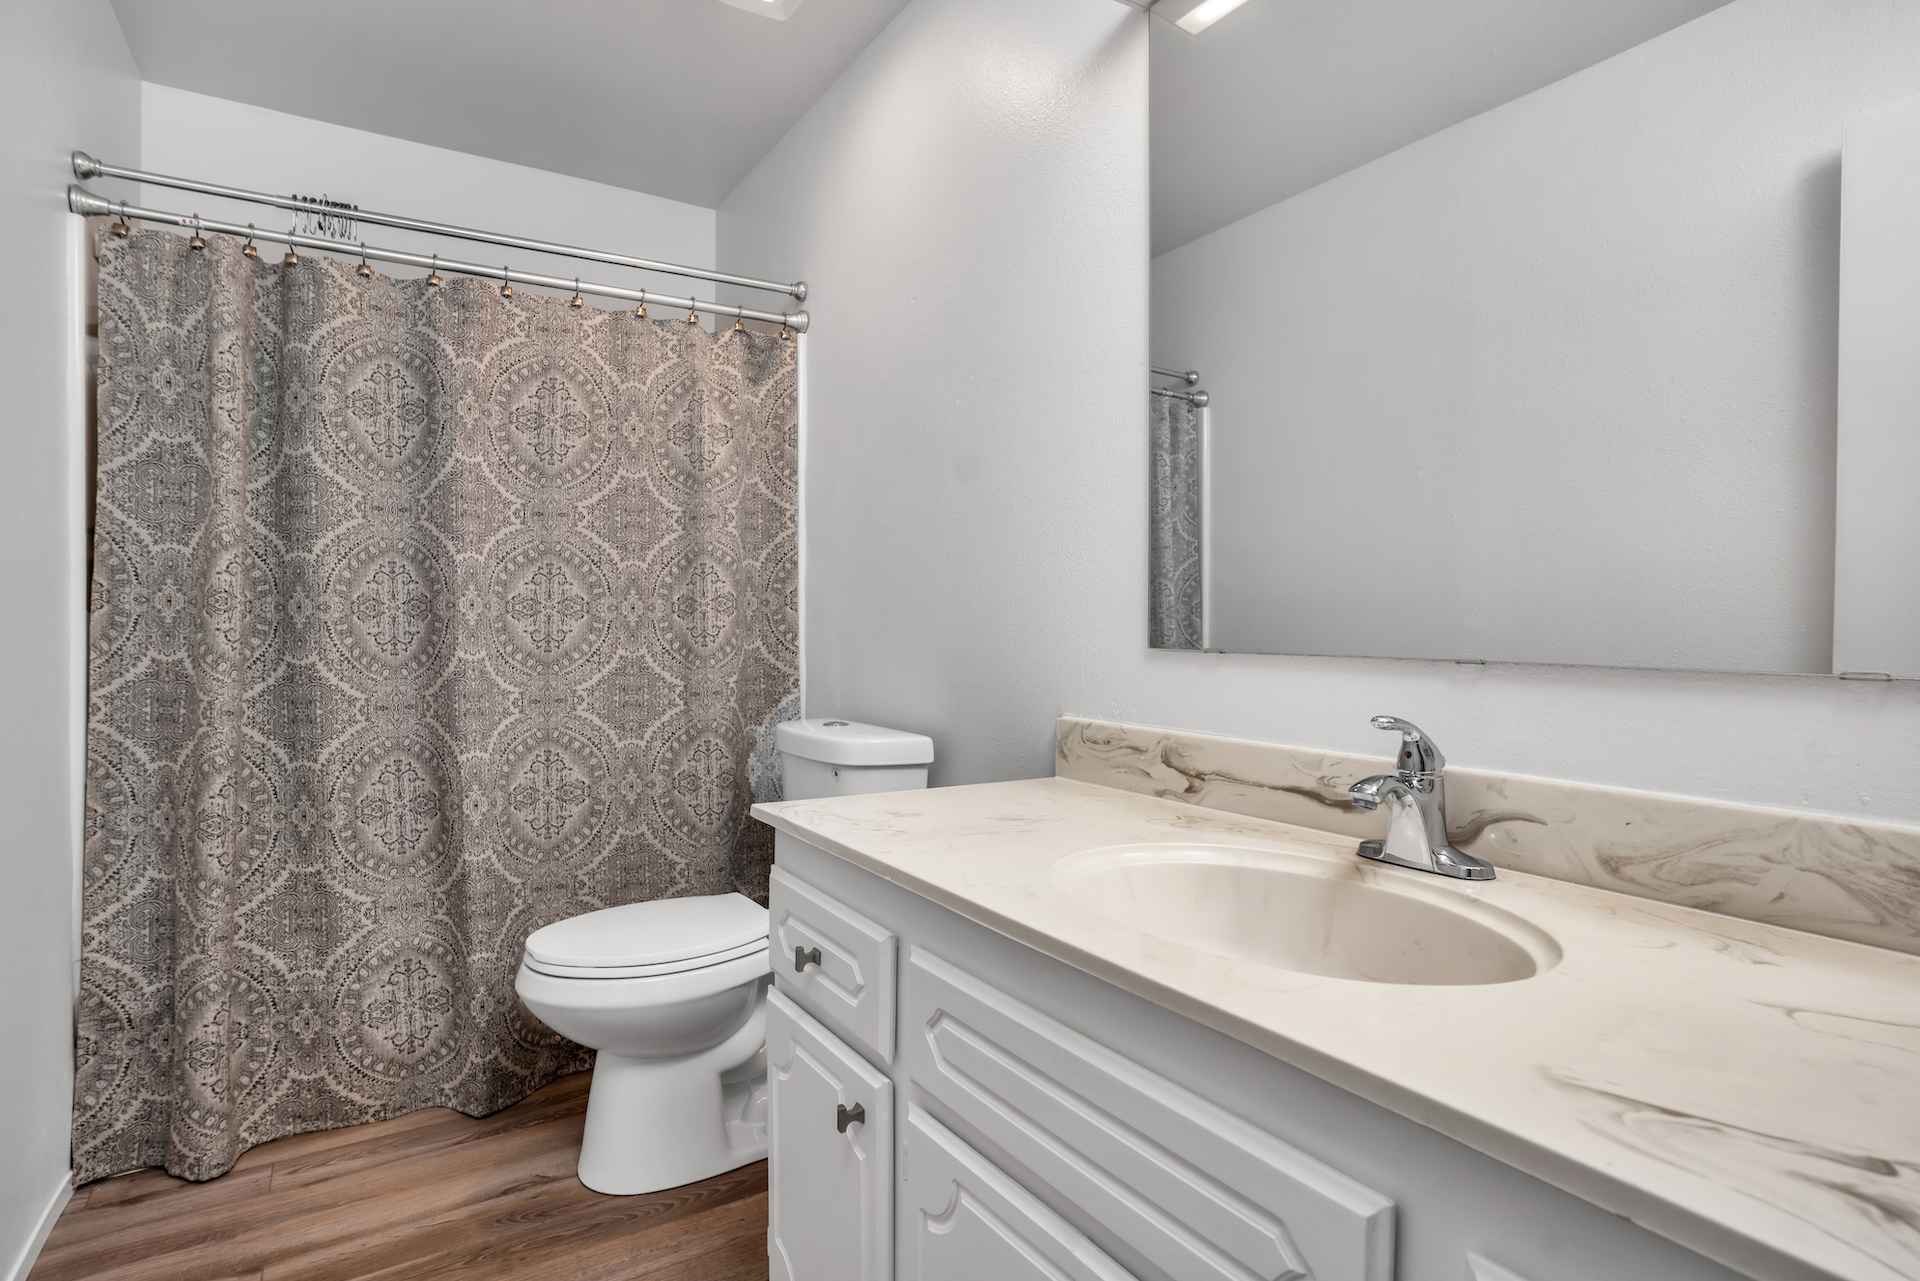 7033 La Costa Ln, Citrus Heights, Ca | Hall Bathroom | Citrus Heights Real Estate Agent